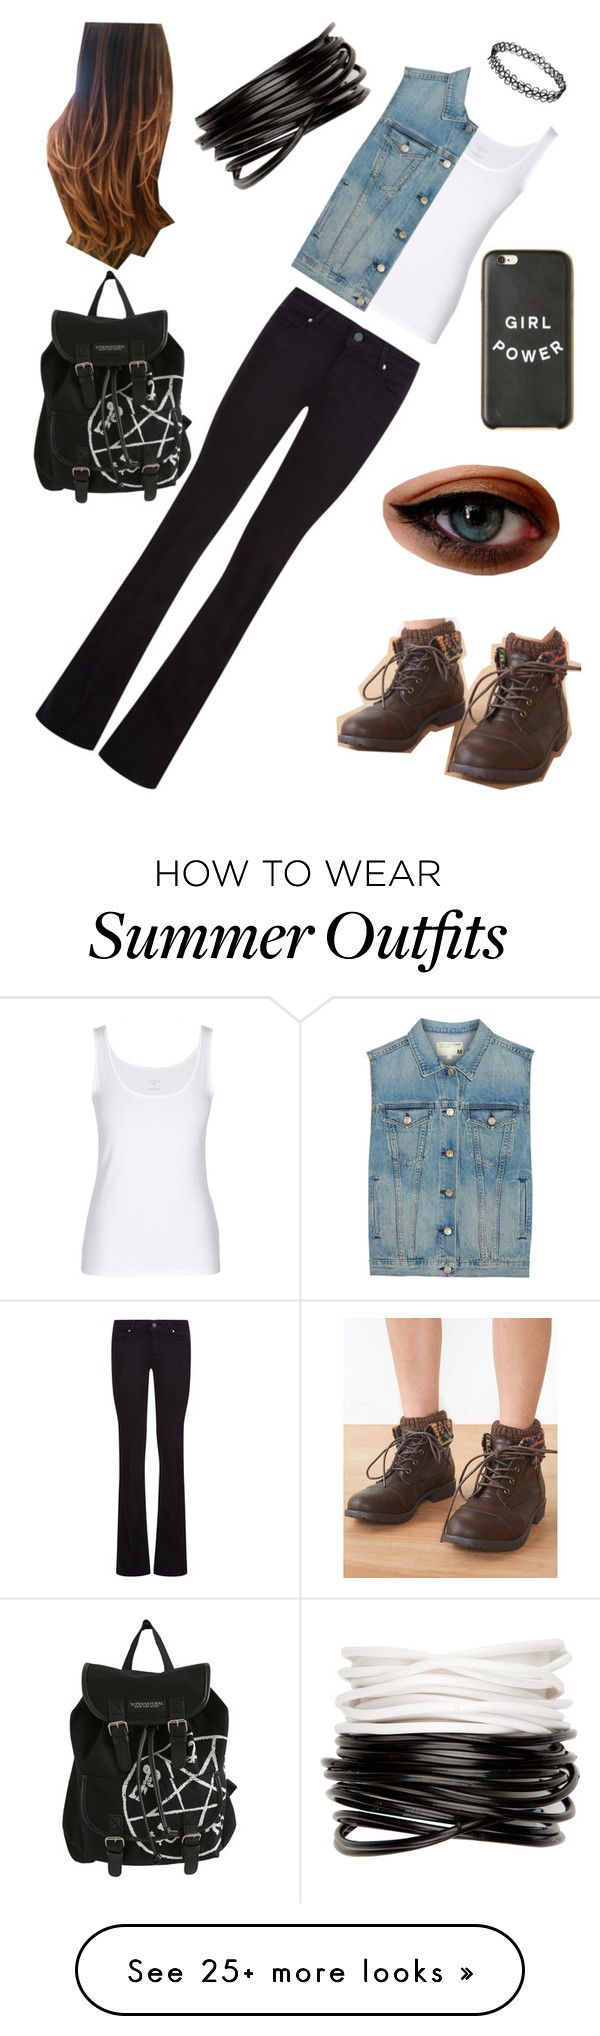 """""""Punker Outfit"""" by cooljen13 on Polyvore featuring rag & bone, Pai..."""